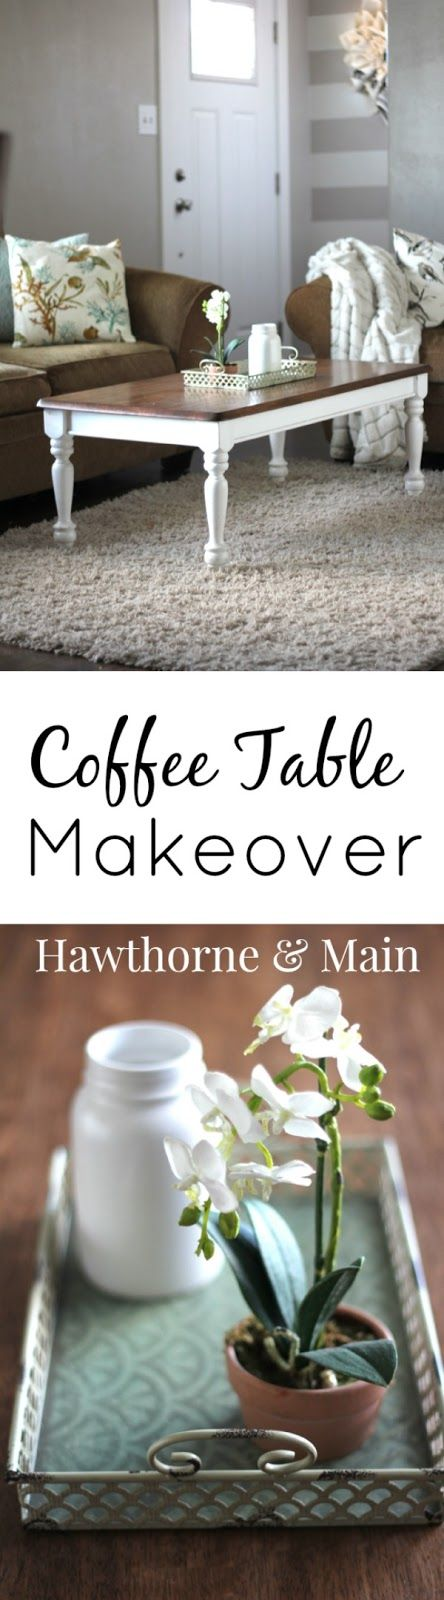 Do you have an older outdated coffee table that you just wish you could change the look of? This tutorial will walk you through the process of updating your old outdated coffee table.  I love how a little furniture makeover can really change the look and feel of a room.